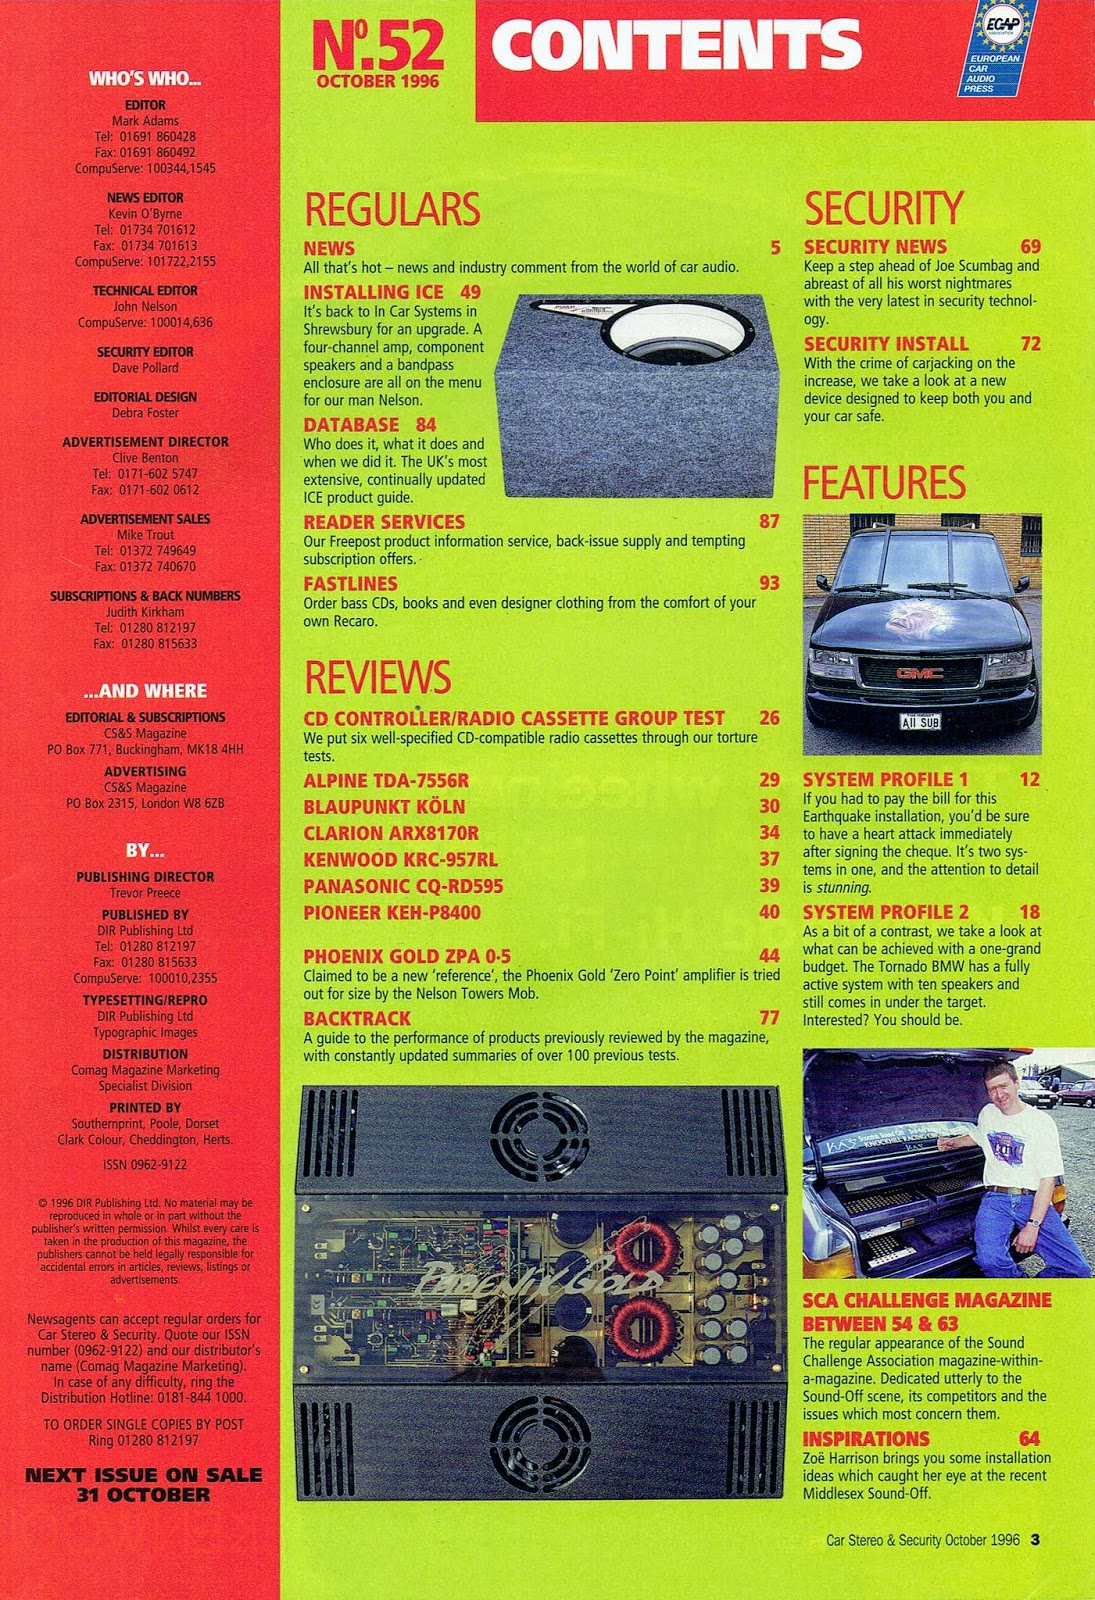 Image of British Car Stereo & Security magazine's no. 52 index page.